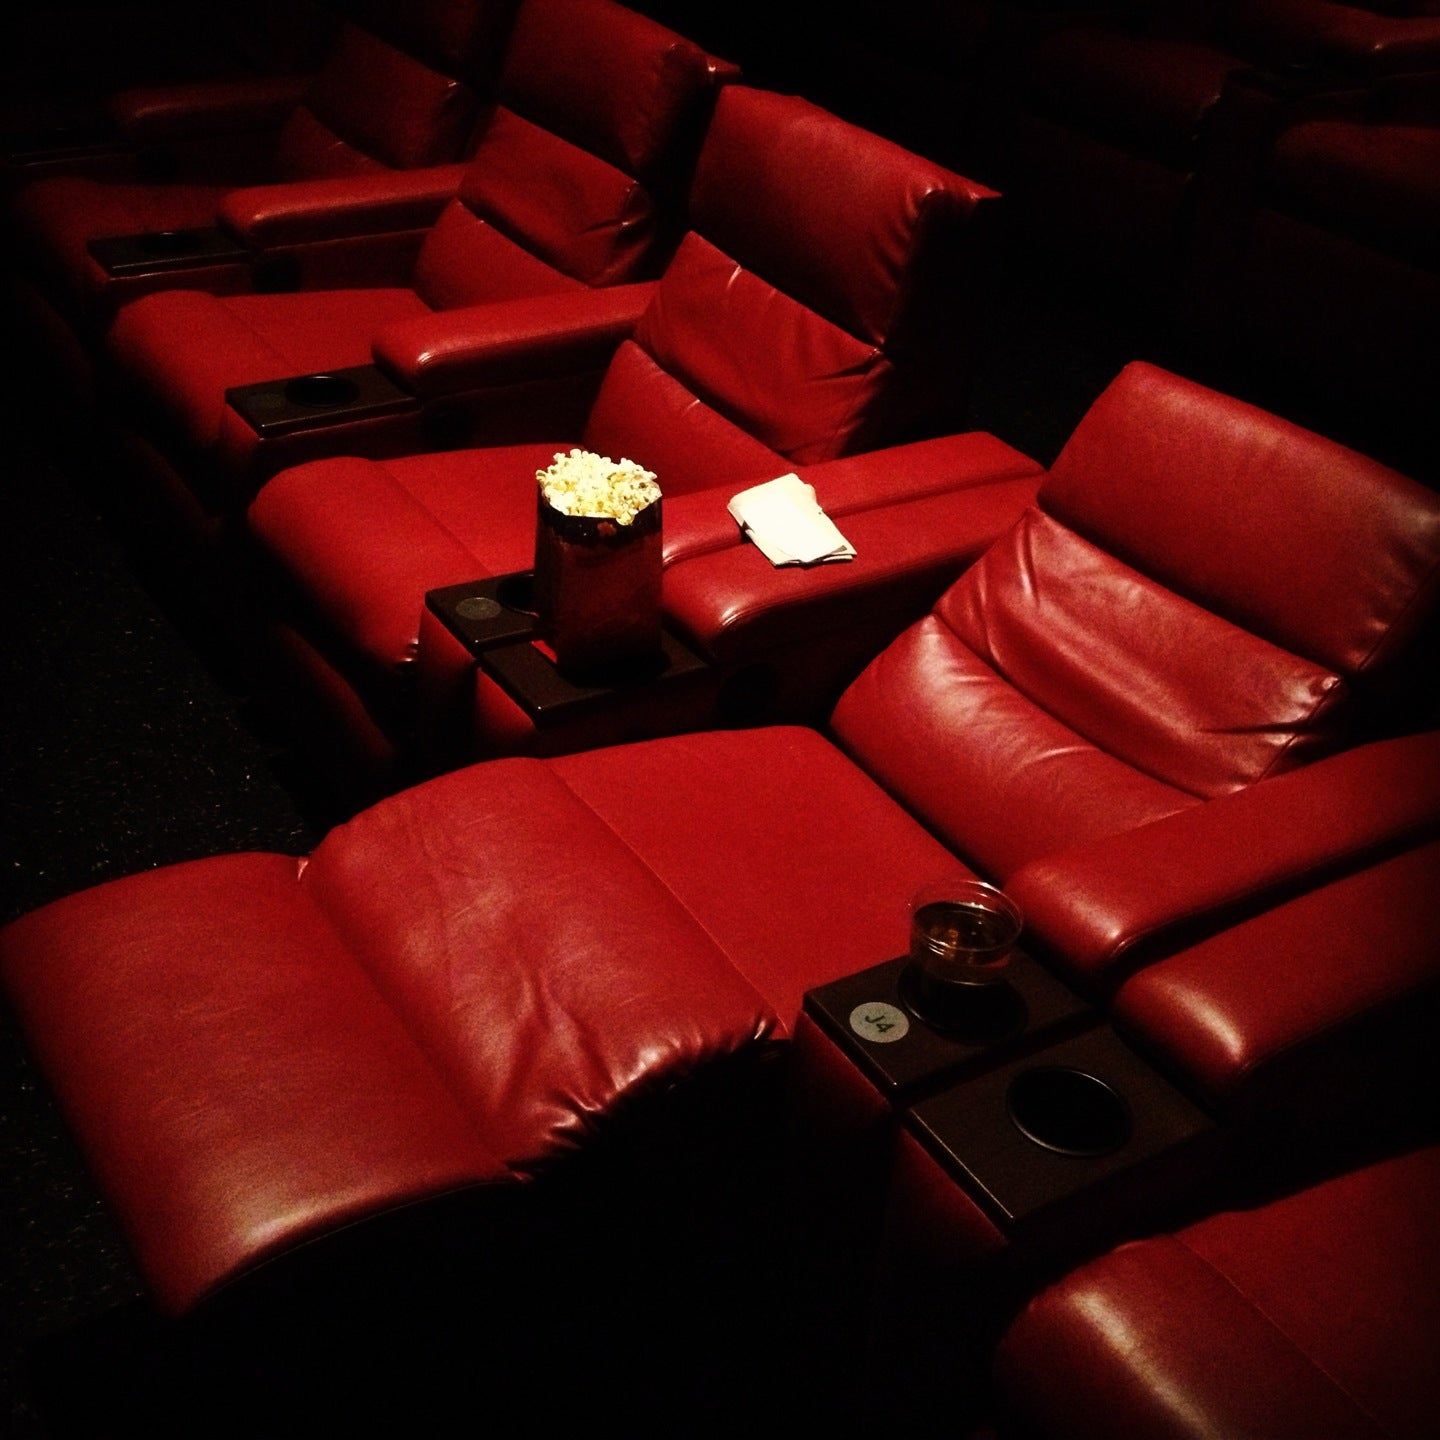 Galaxy theatres green valley cinema henderson nv reviews - Galaxy Green Valley Luxury At 4500 E Sunset Rd Ste 10 Green Valley Parkway Henderson Nv The Daily Meal